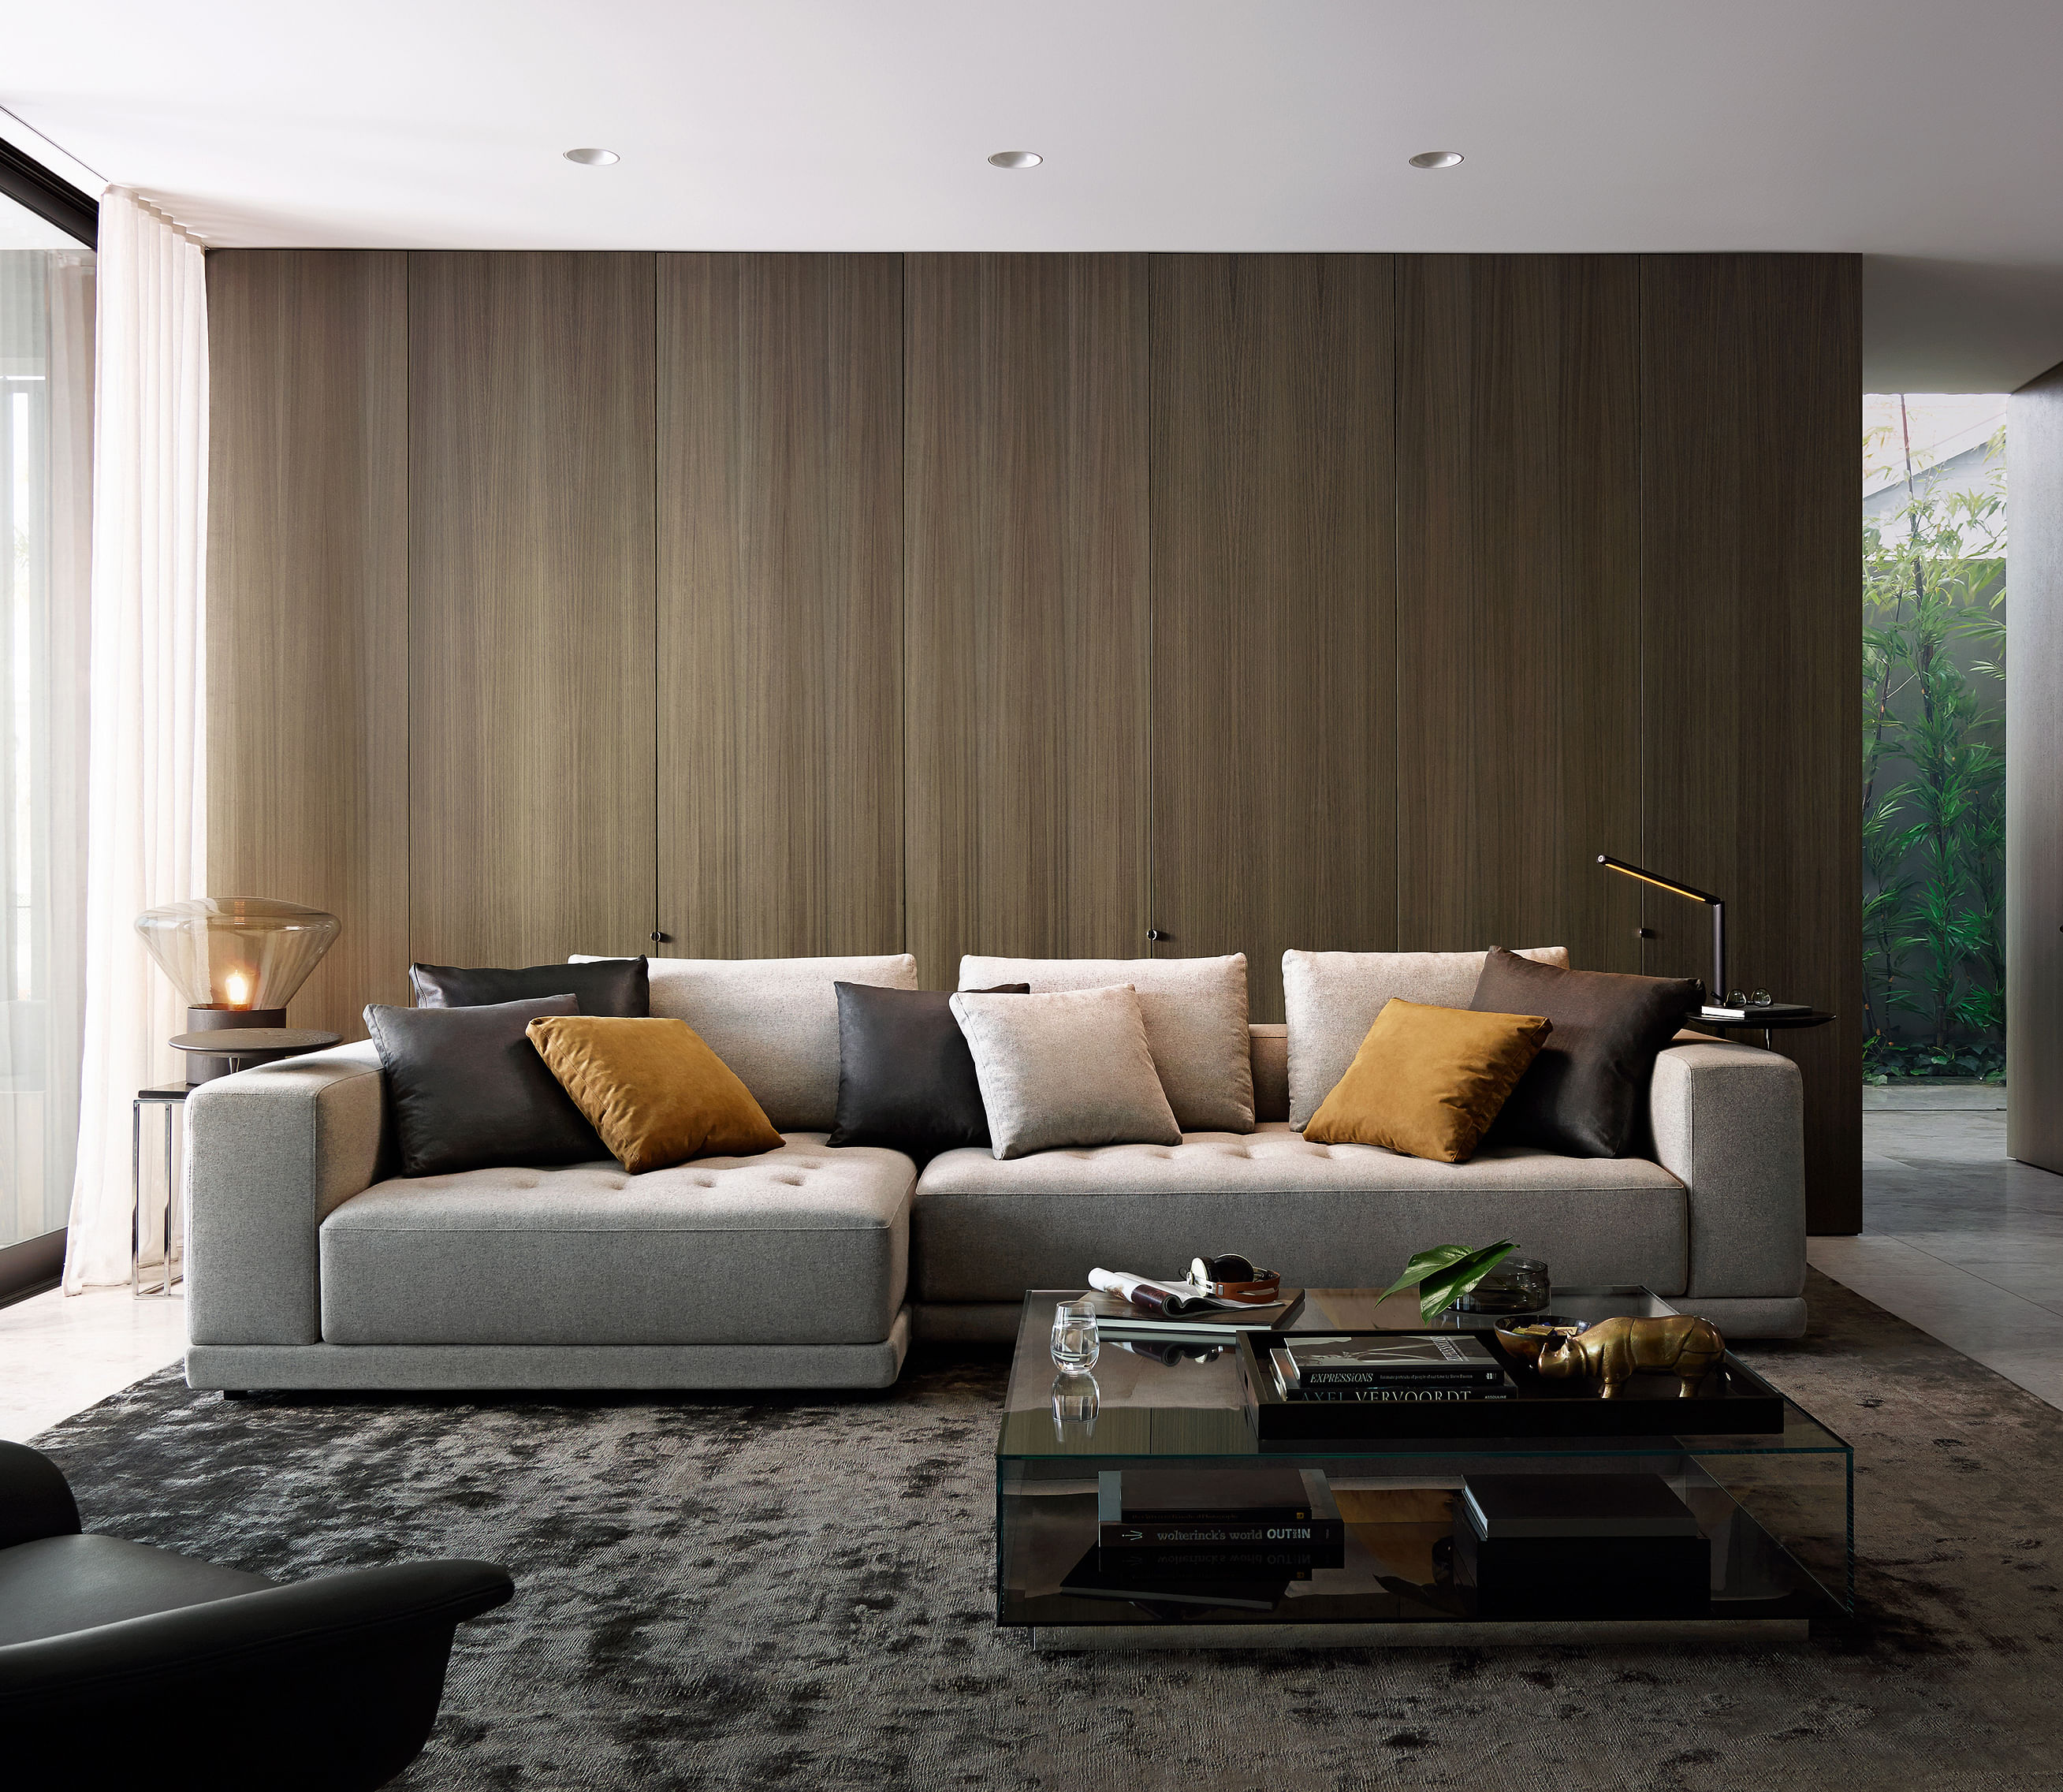 Stylish And Practical Contemporary Furniture For Every Room - Home & Decor Singapore